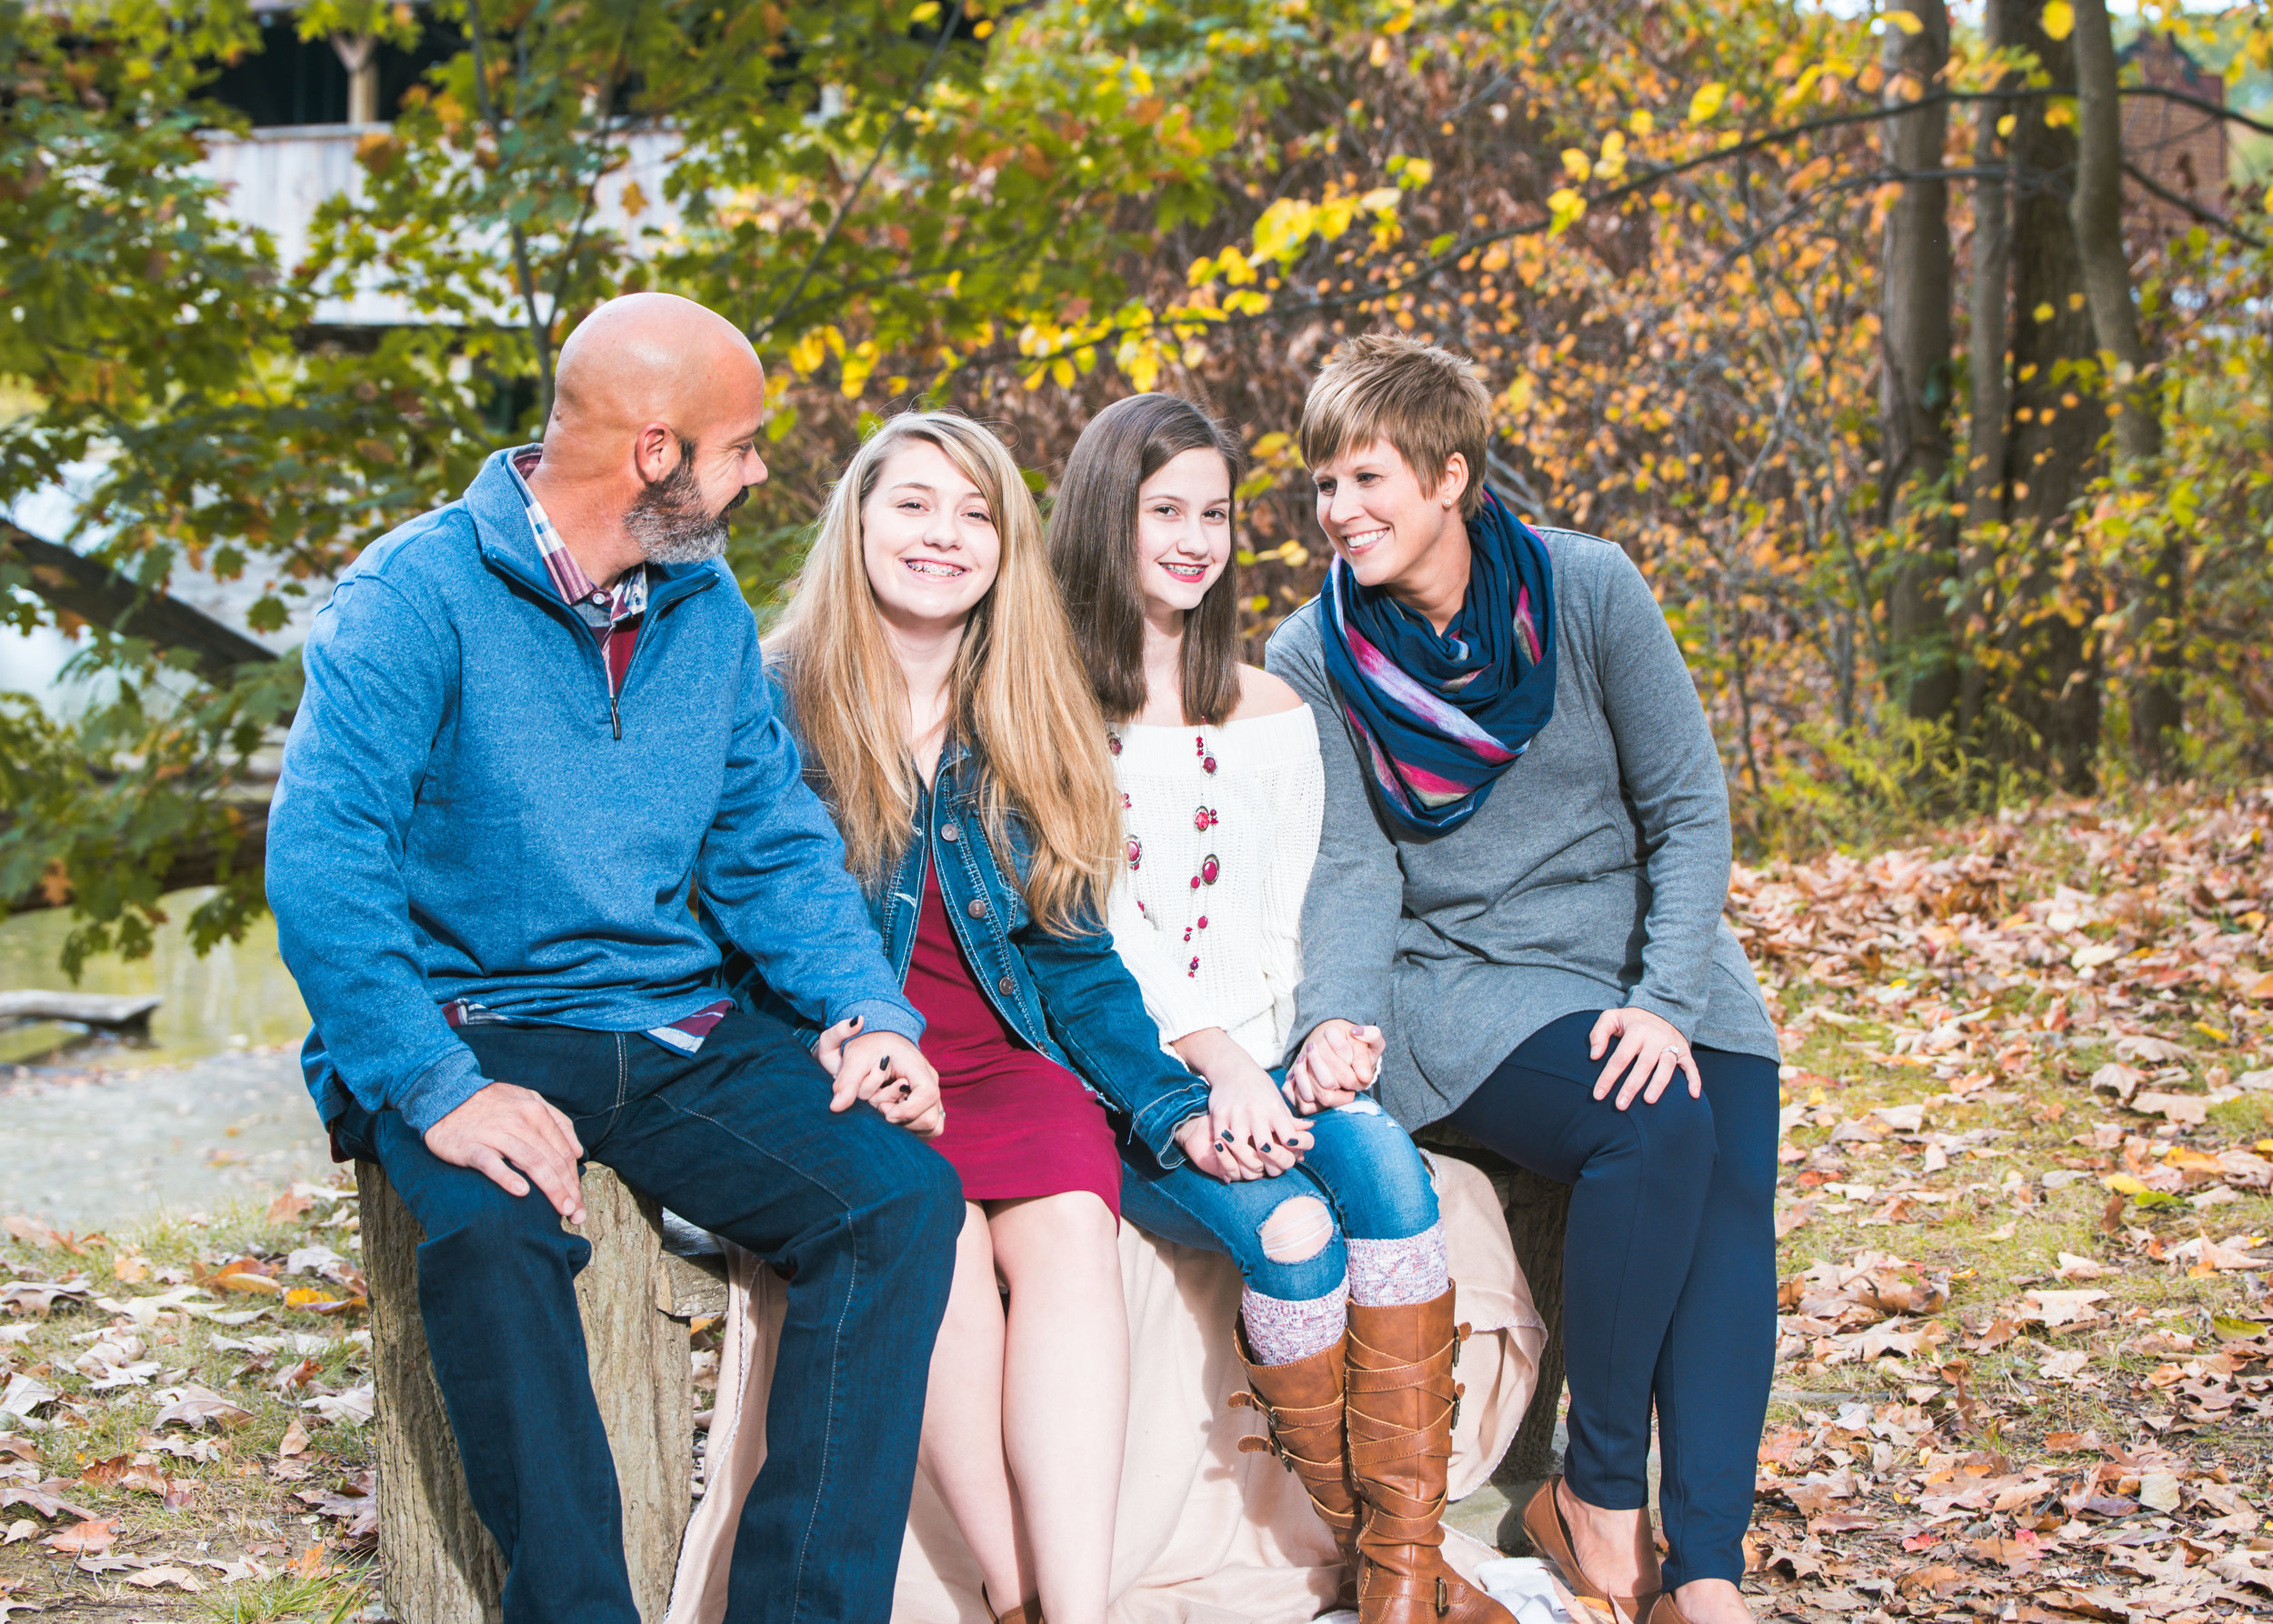 Fall Family Photography, Fall Family session, Cleveland Family Photography, Cleveland Family photographer, fall photos, lake county, harpersfield covered bridge